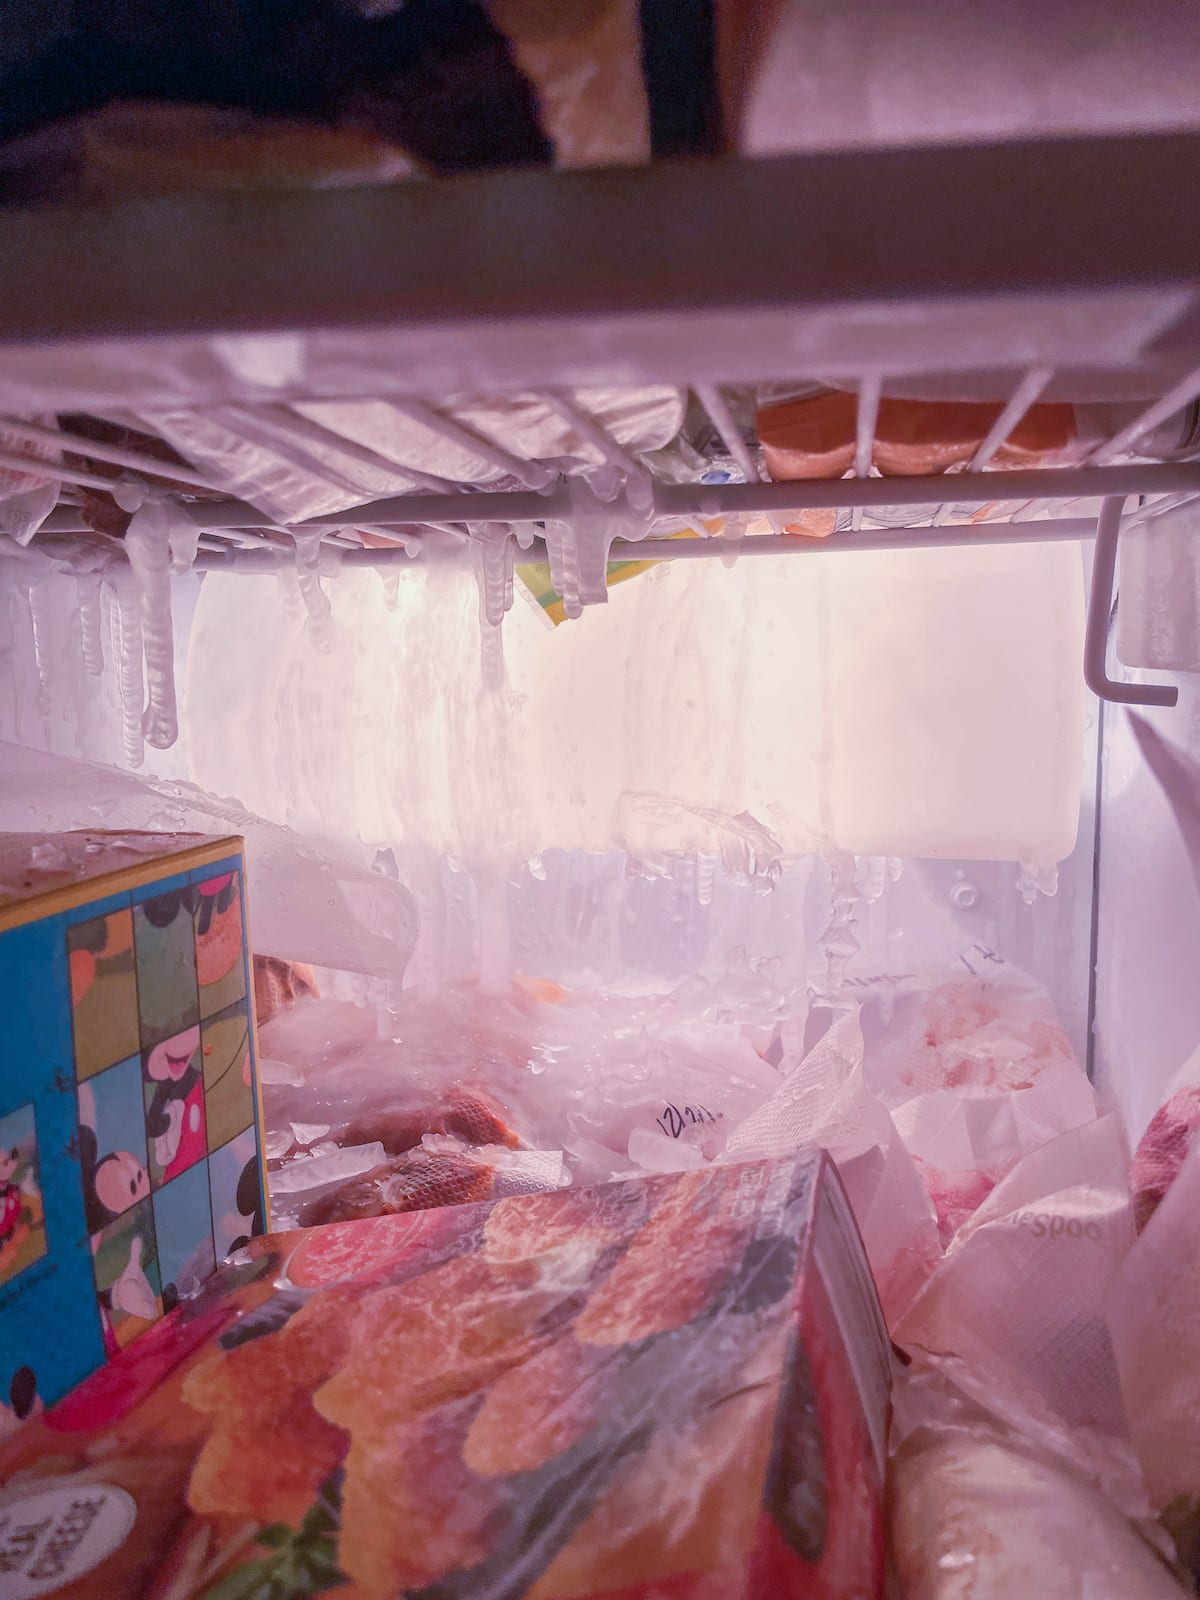 Inside of a freezer with icicles hanging down over frozen food.